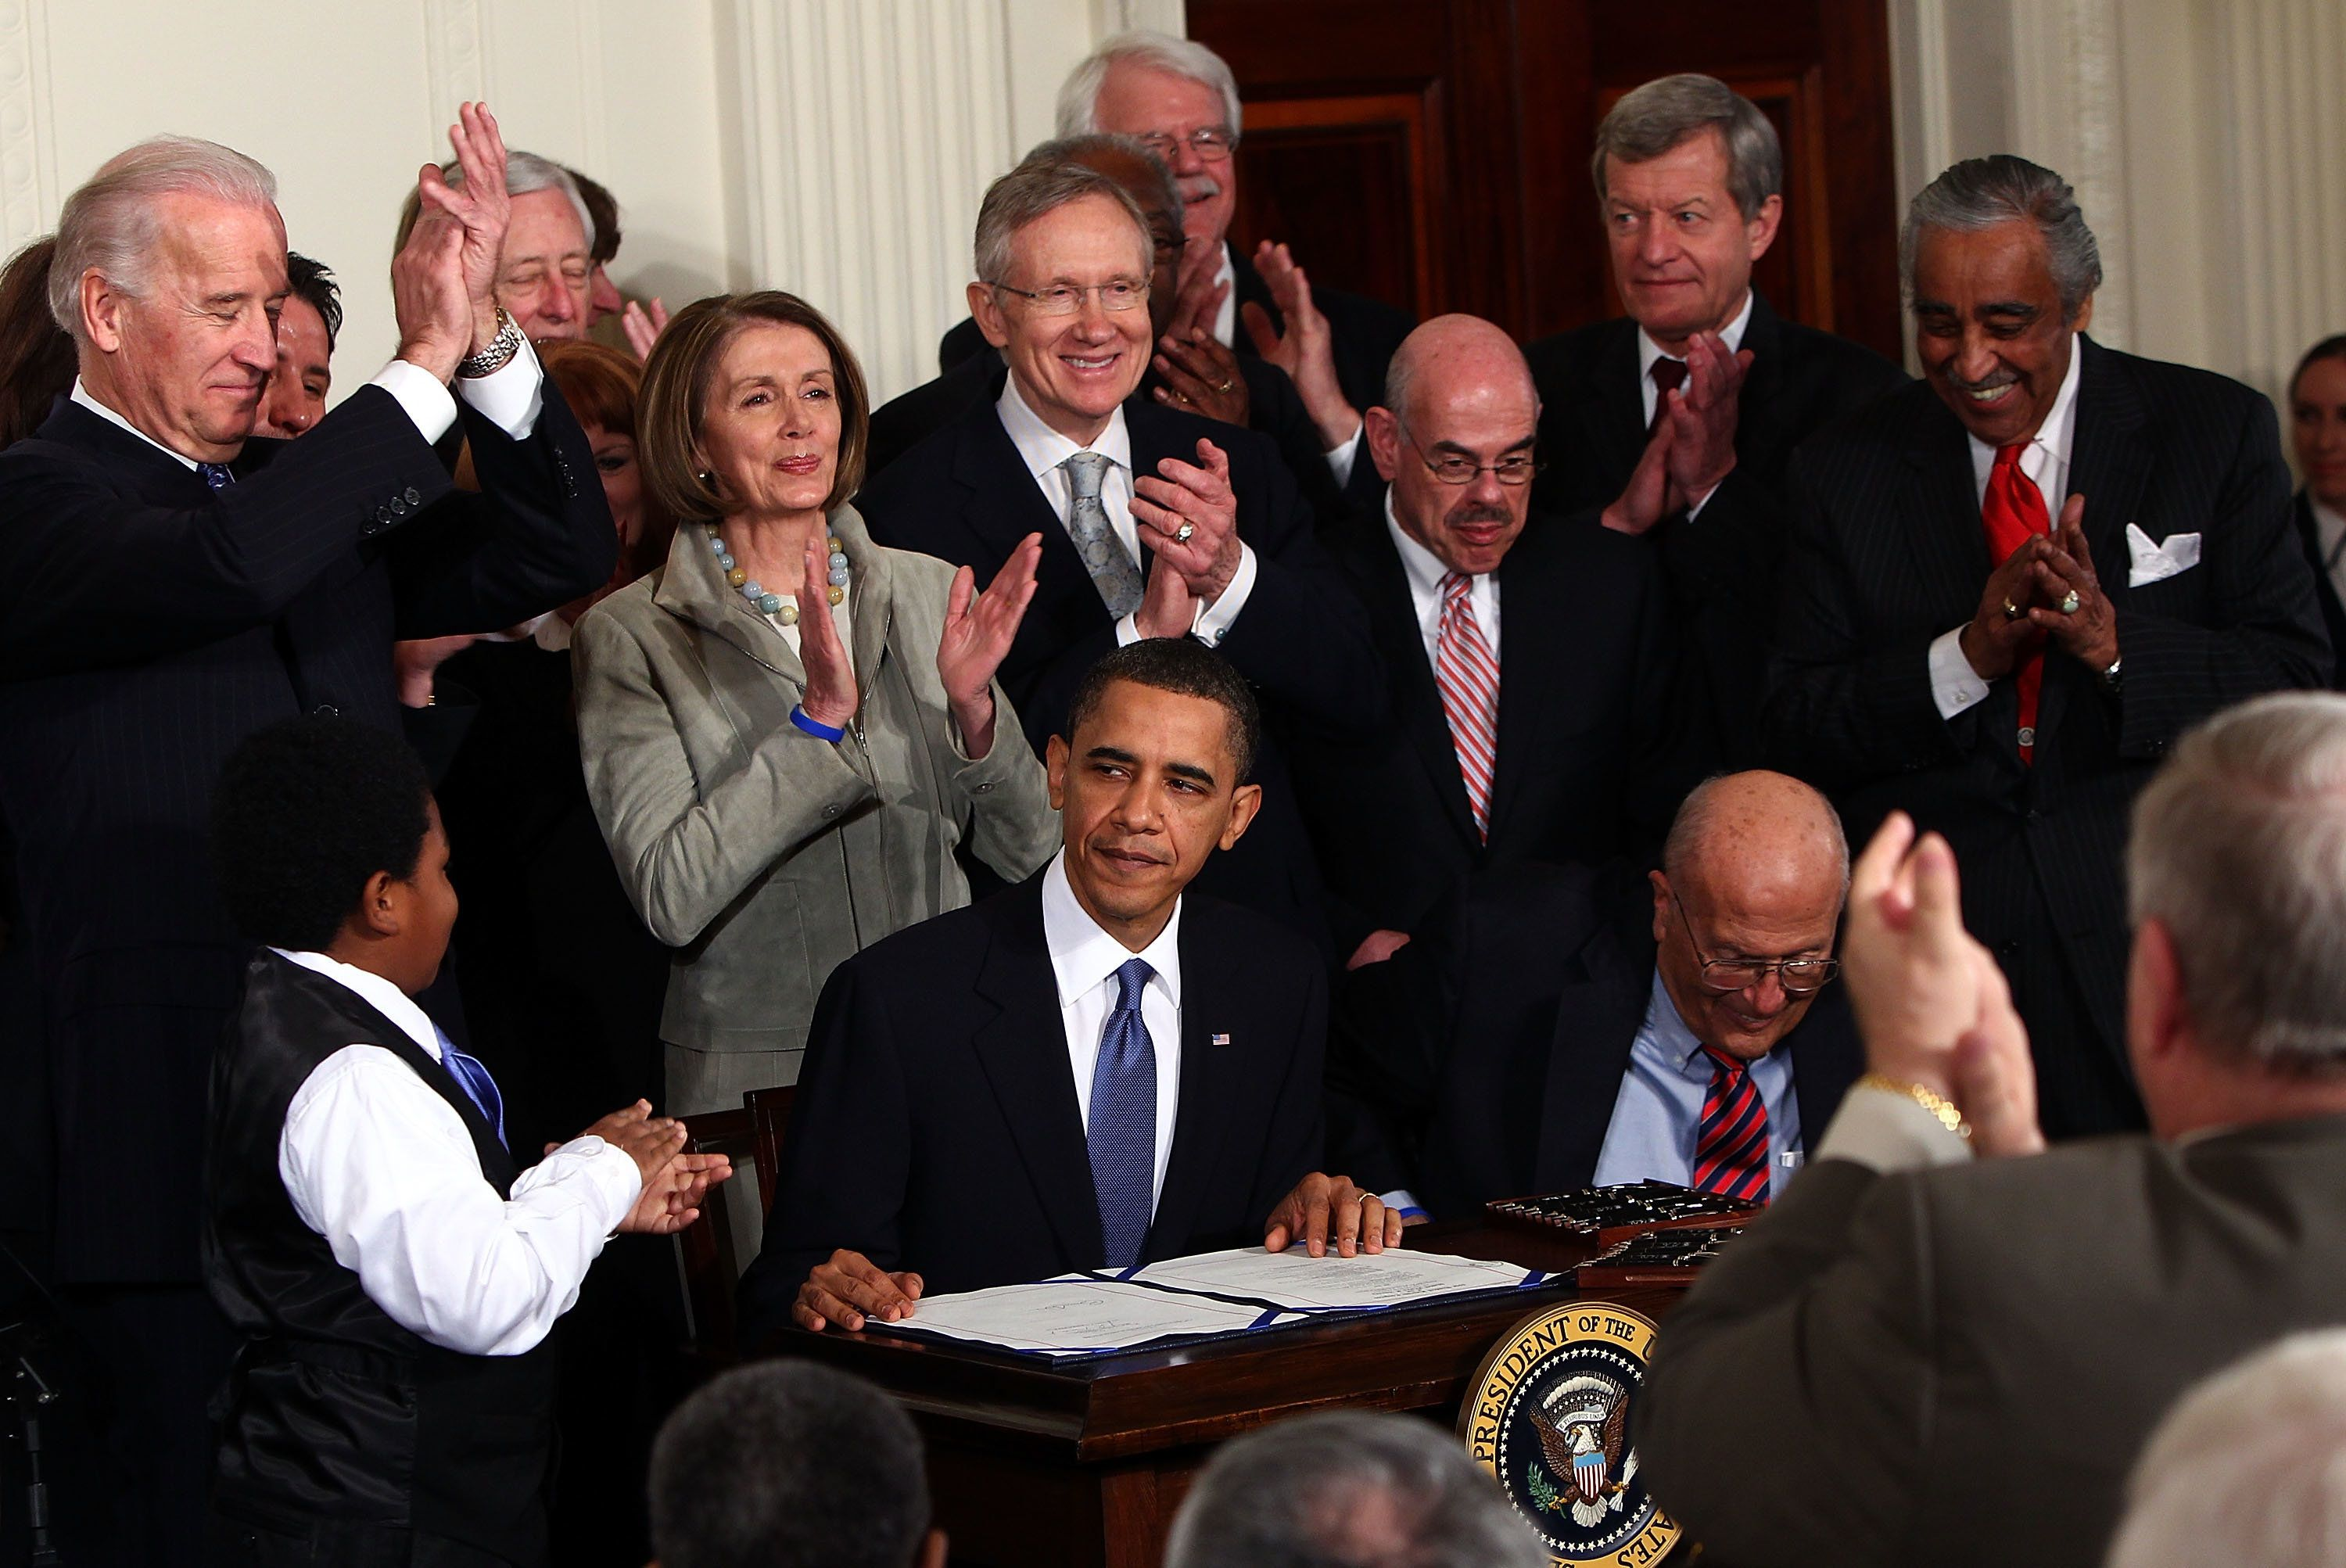 President Barack Obama signs the Affordable Care Act into law on March 23, 2010. He didn't pose for the media when he put his